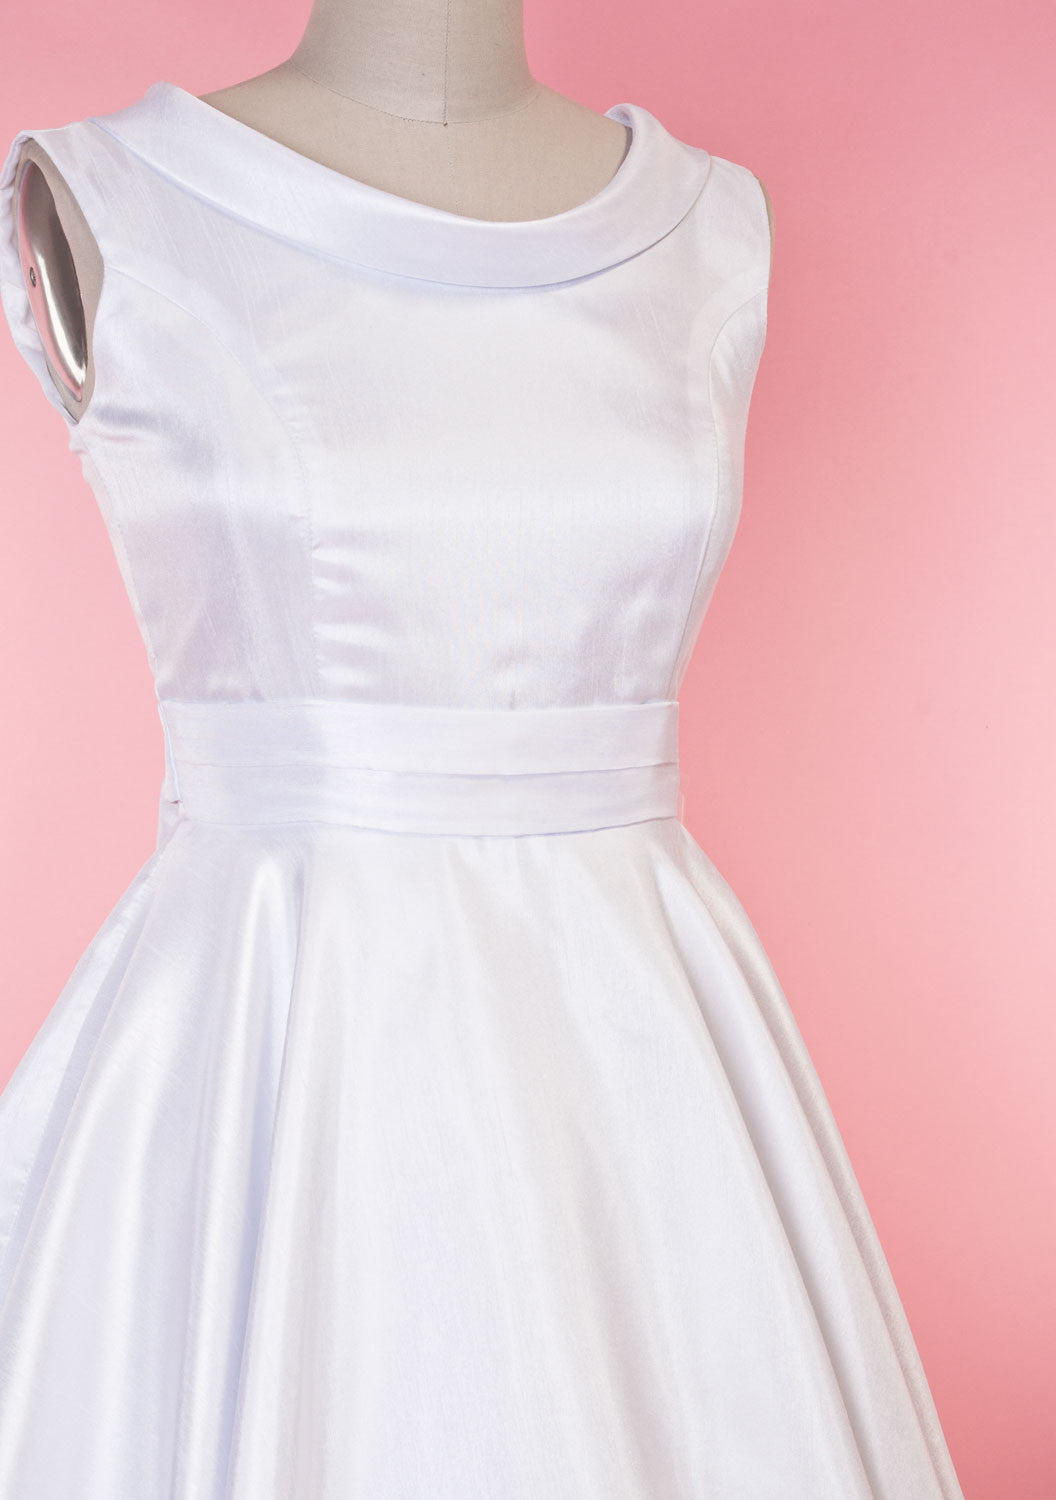 BP Suzette Dress - White Shantung - Heart of Haute  - 5